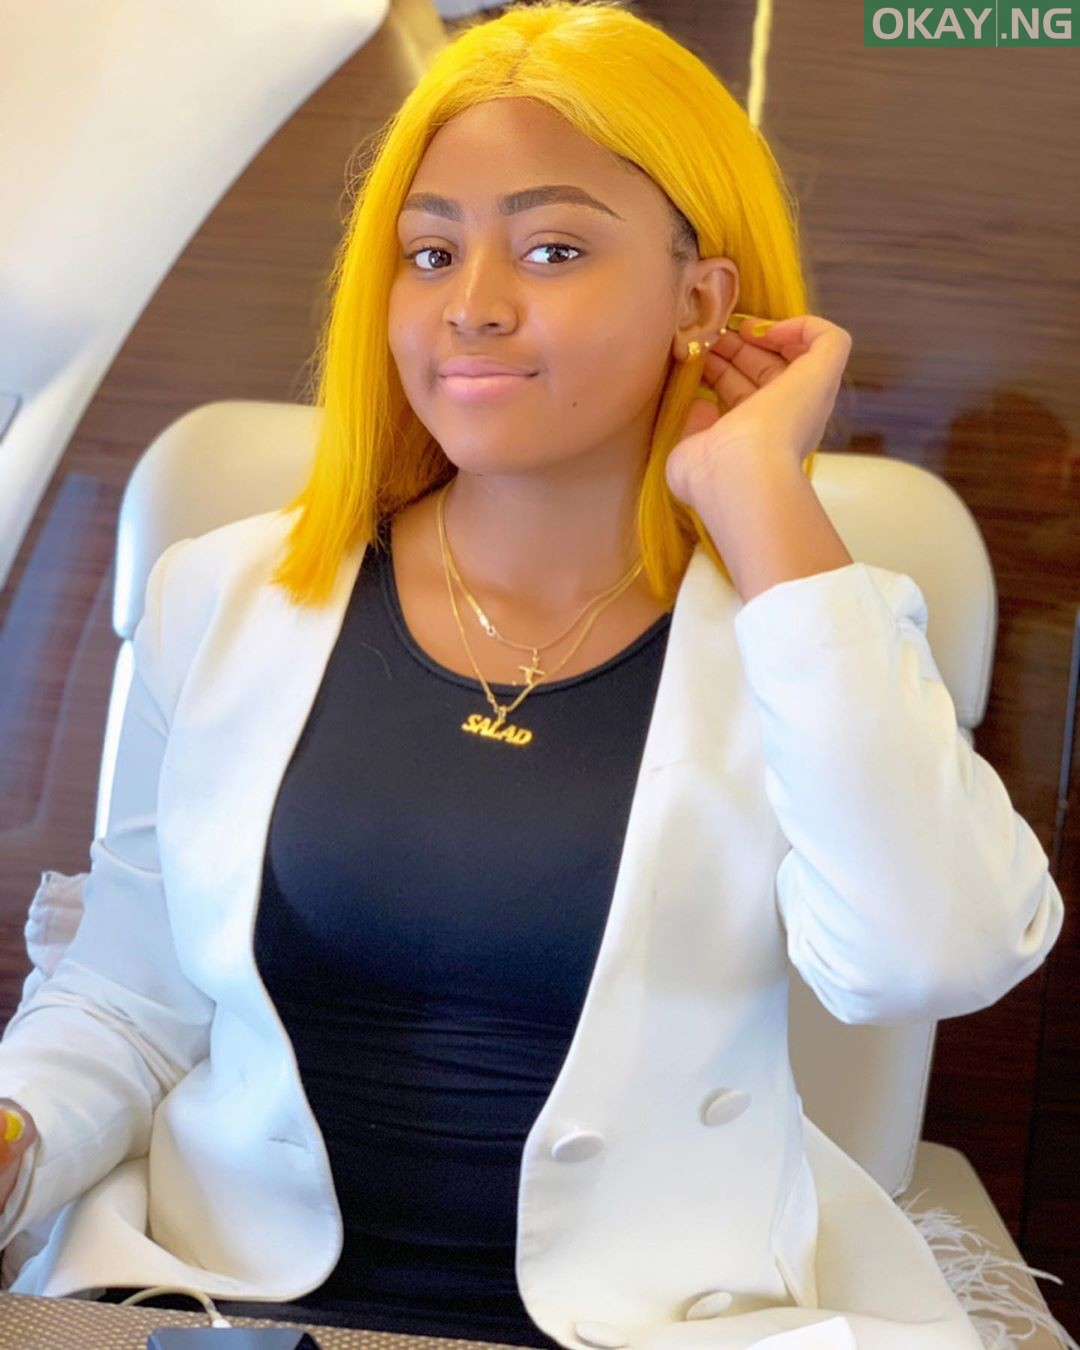 65737269 690106654743978 340105237861053592 n - Simple Girl! Regina Daniels shares new stunning pictures